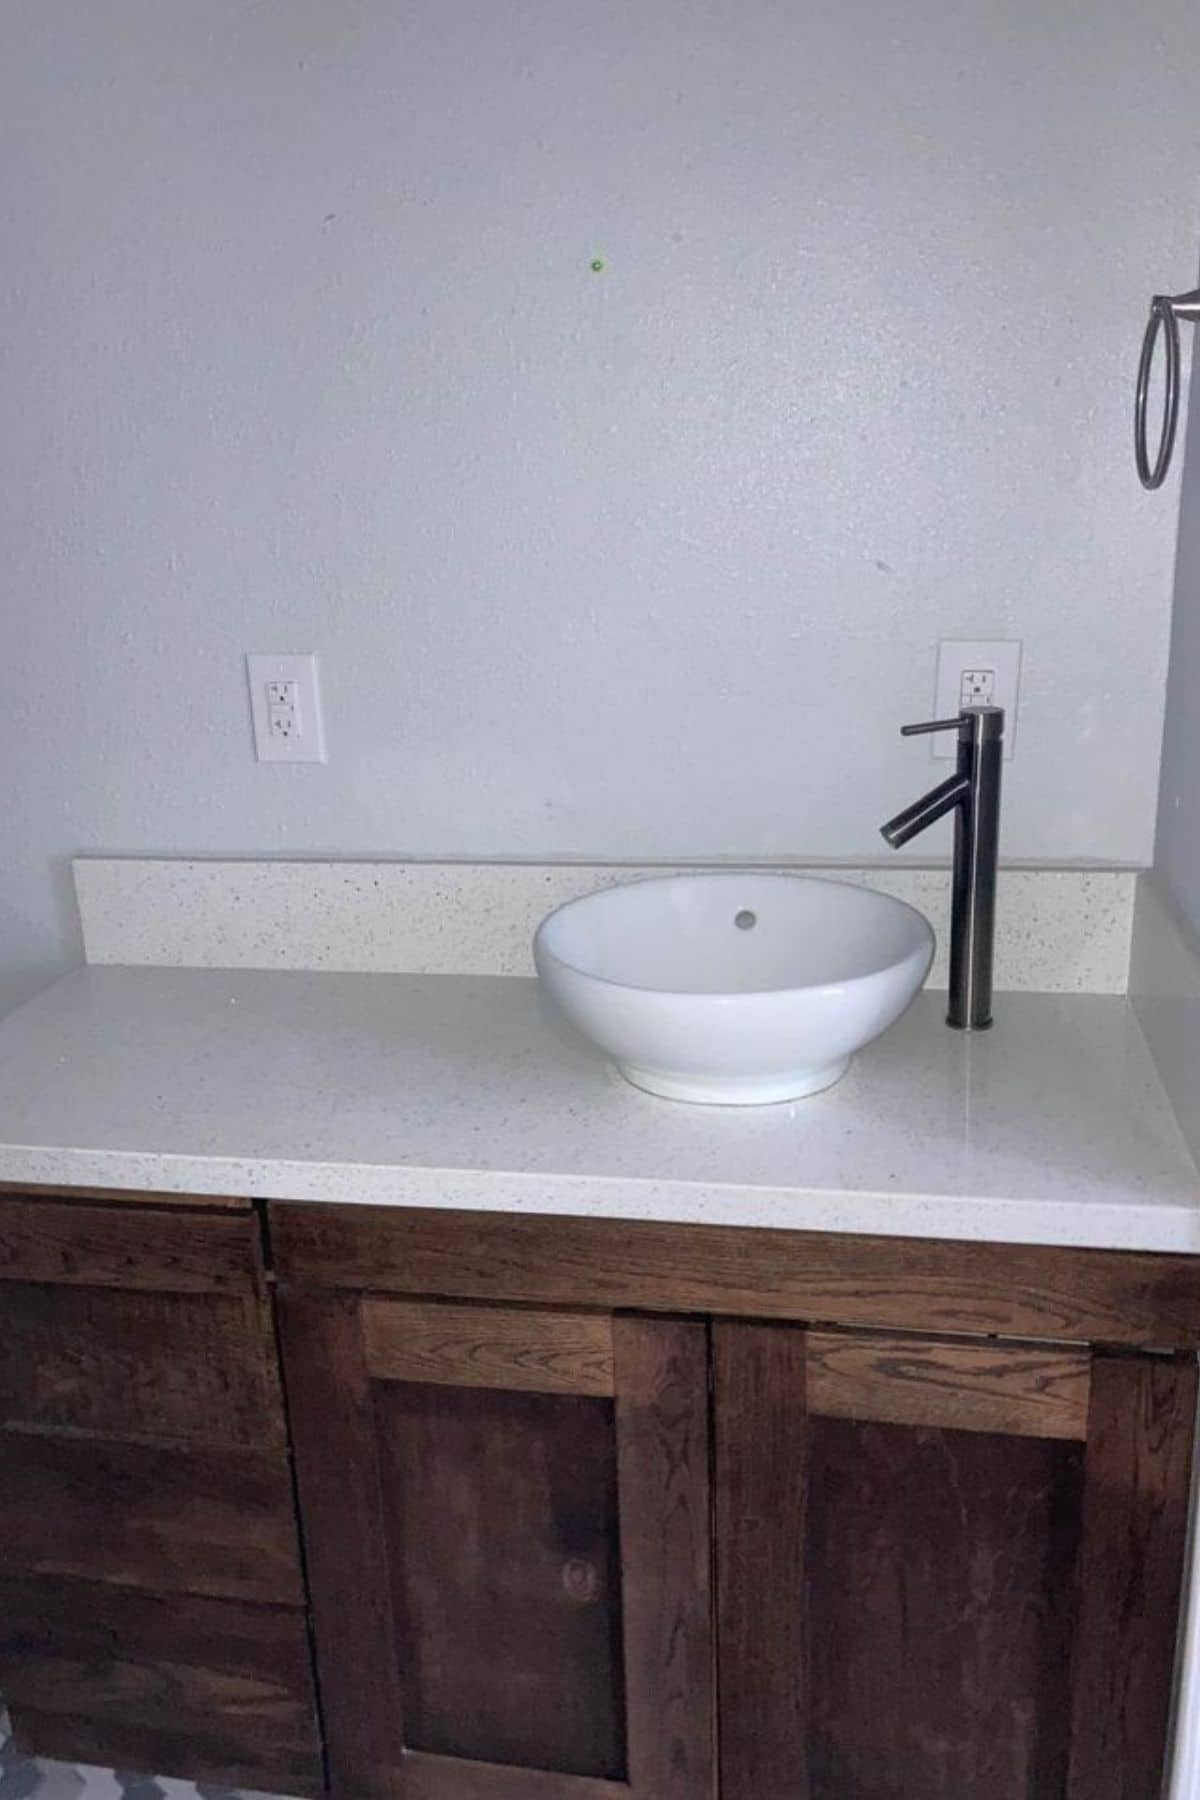 Long bathroom counter with white bowl sink against white wall